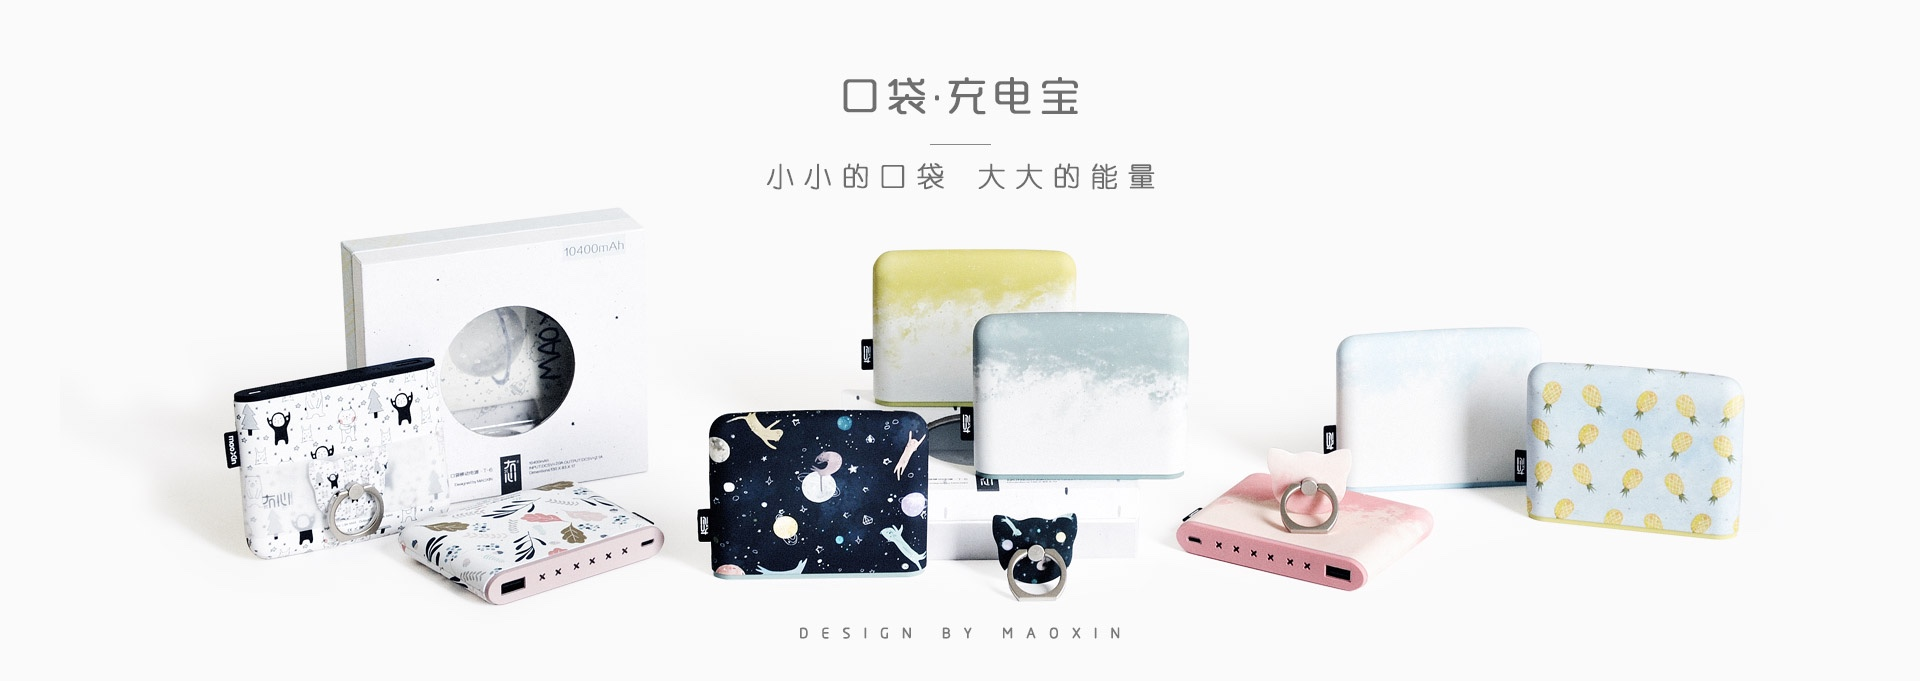 Maoxin Pocket Series Power Bank